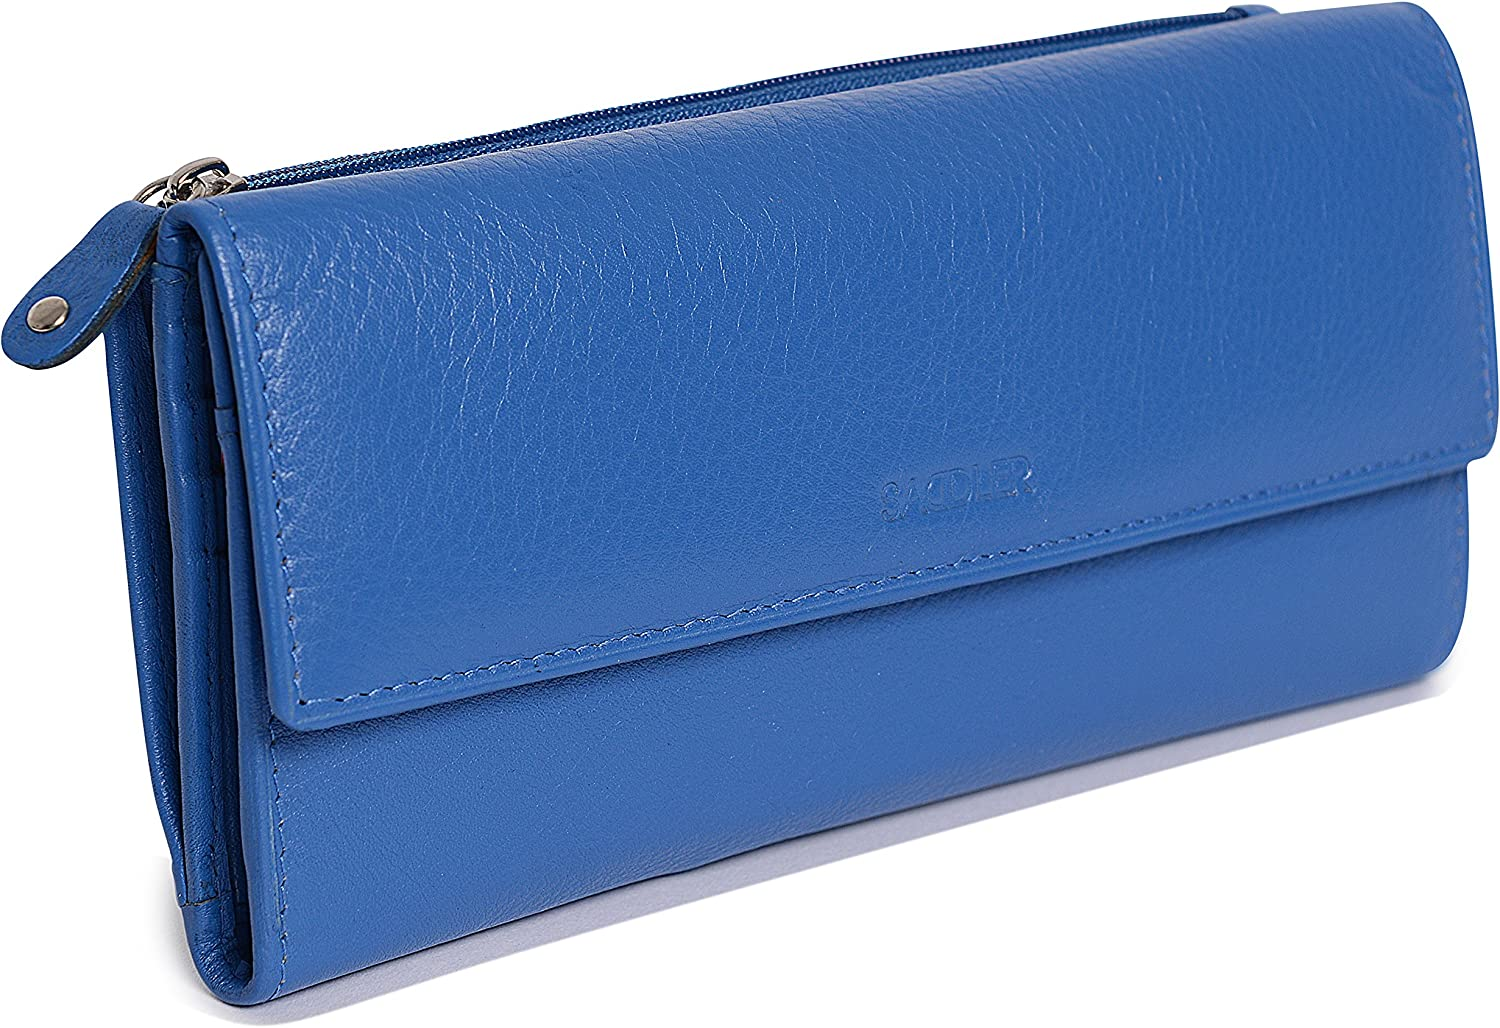 SADDLER Womens Luxurious Real Leather Trifold Wallet Purse Clutch | Gift Boxed